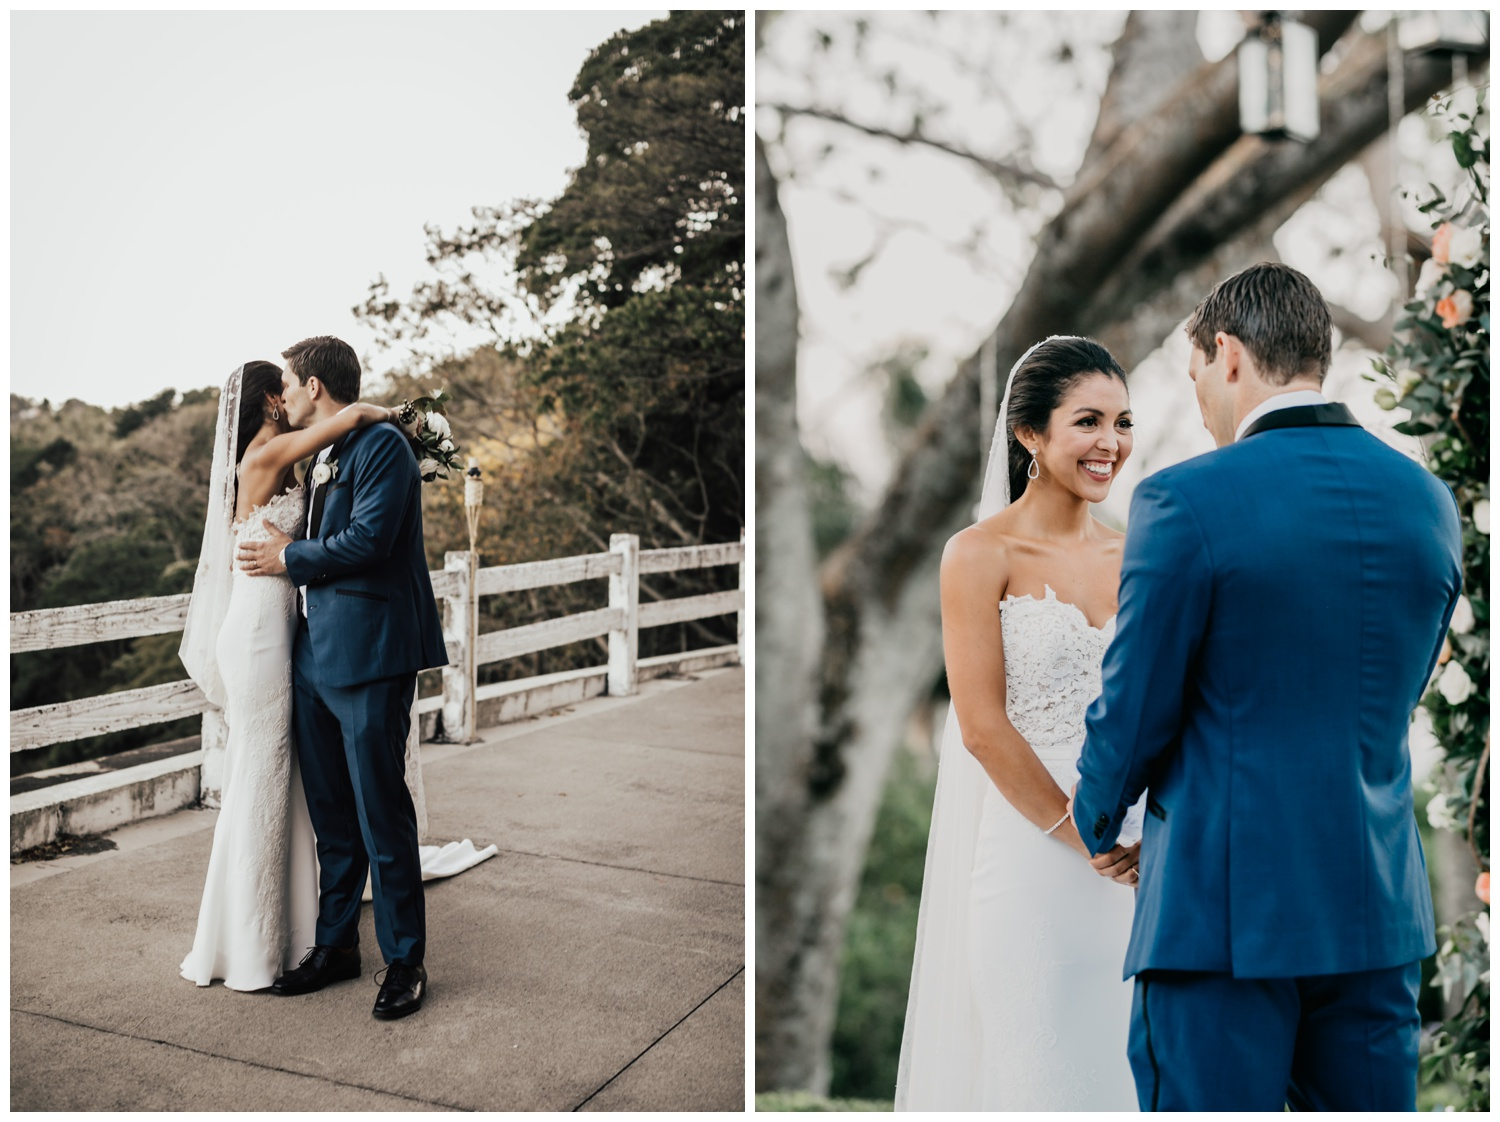 adriana_rivera_miranda_weddings_el_salvador_48.jpg